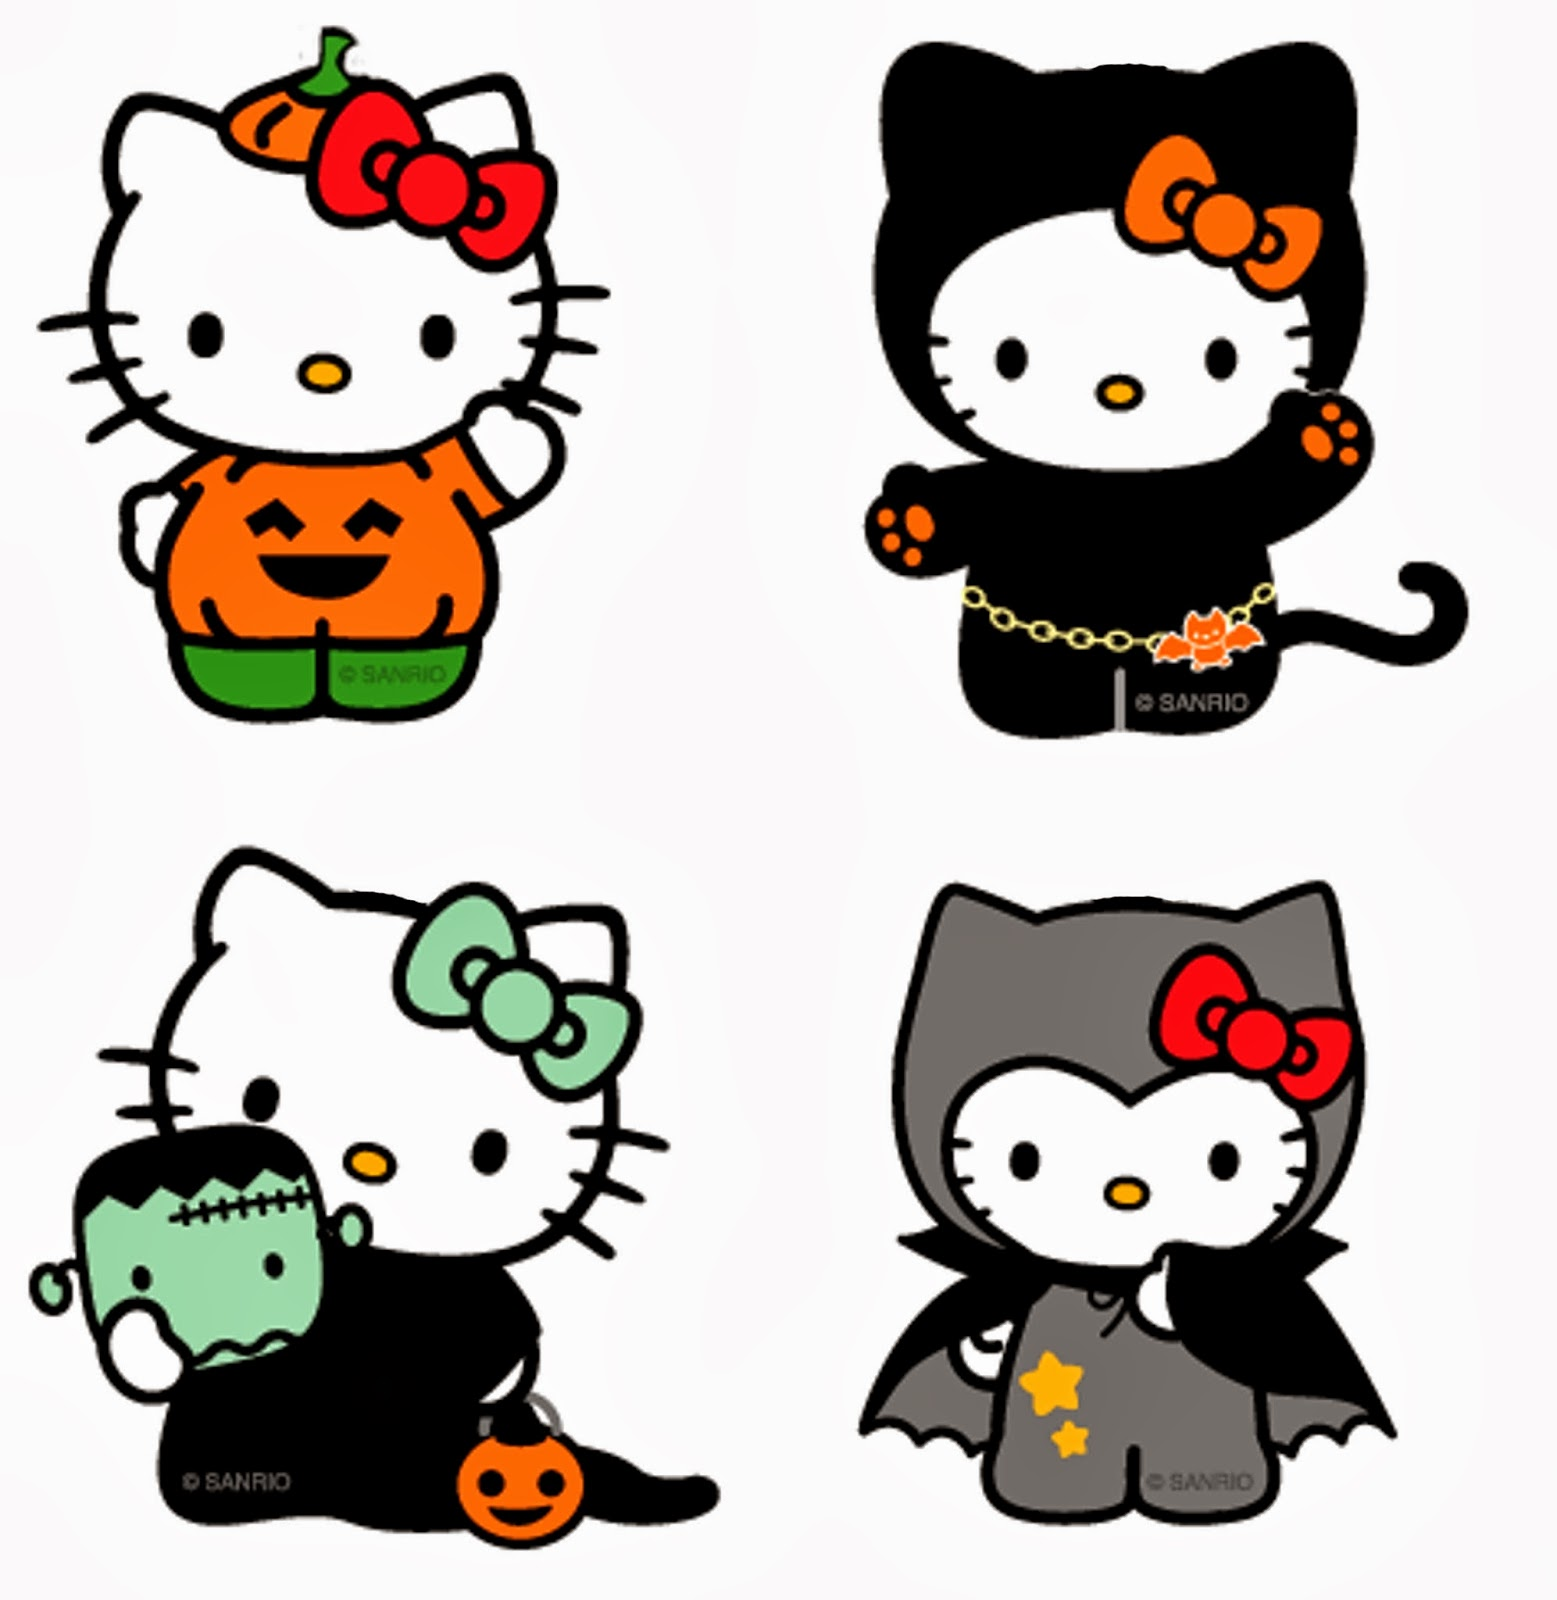 Hello kitty halloween clipart at free for personal use hello kitty halloween - Hello kitty halloween ...